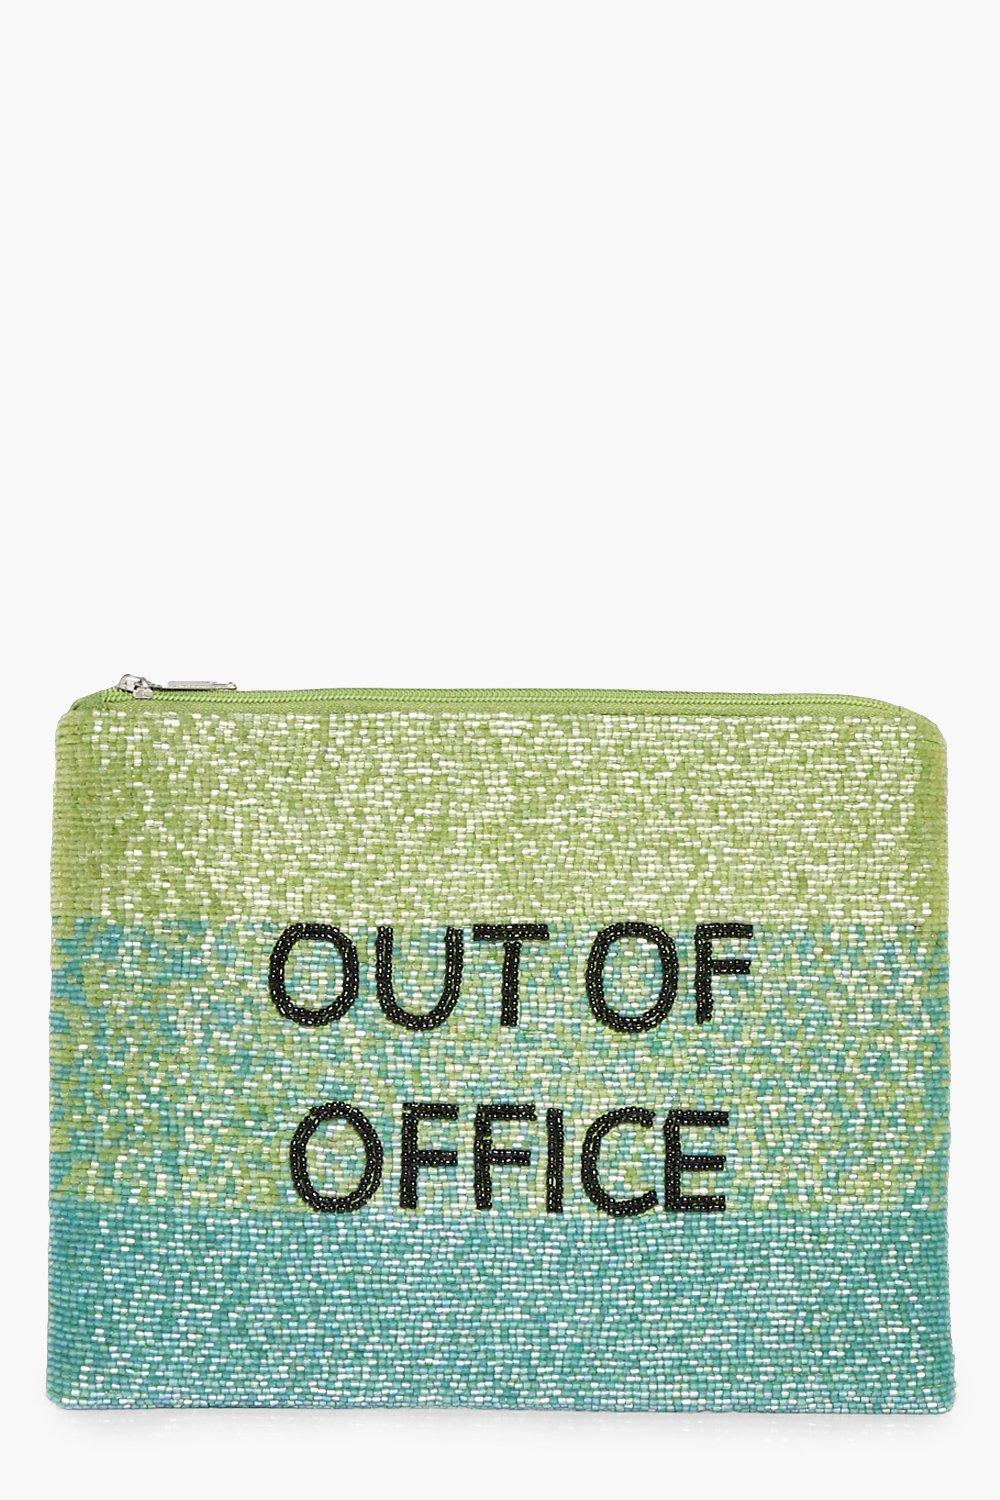 Out Of Office Slogan Embellished Clutch - yellow -